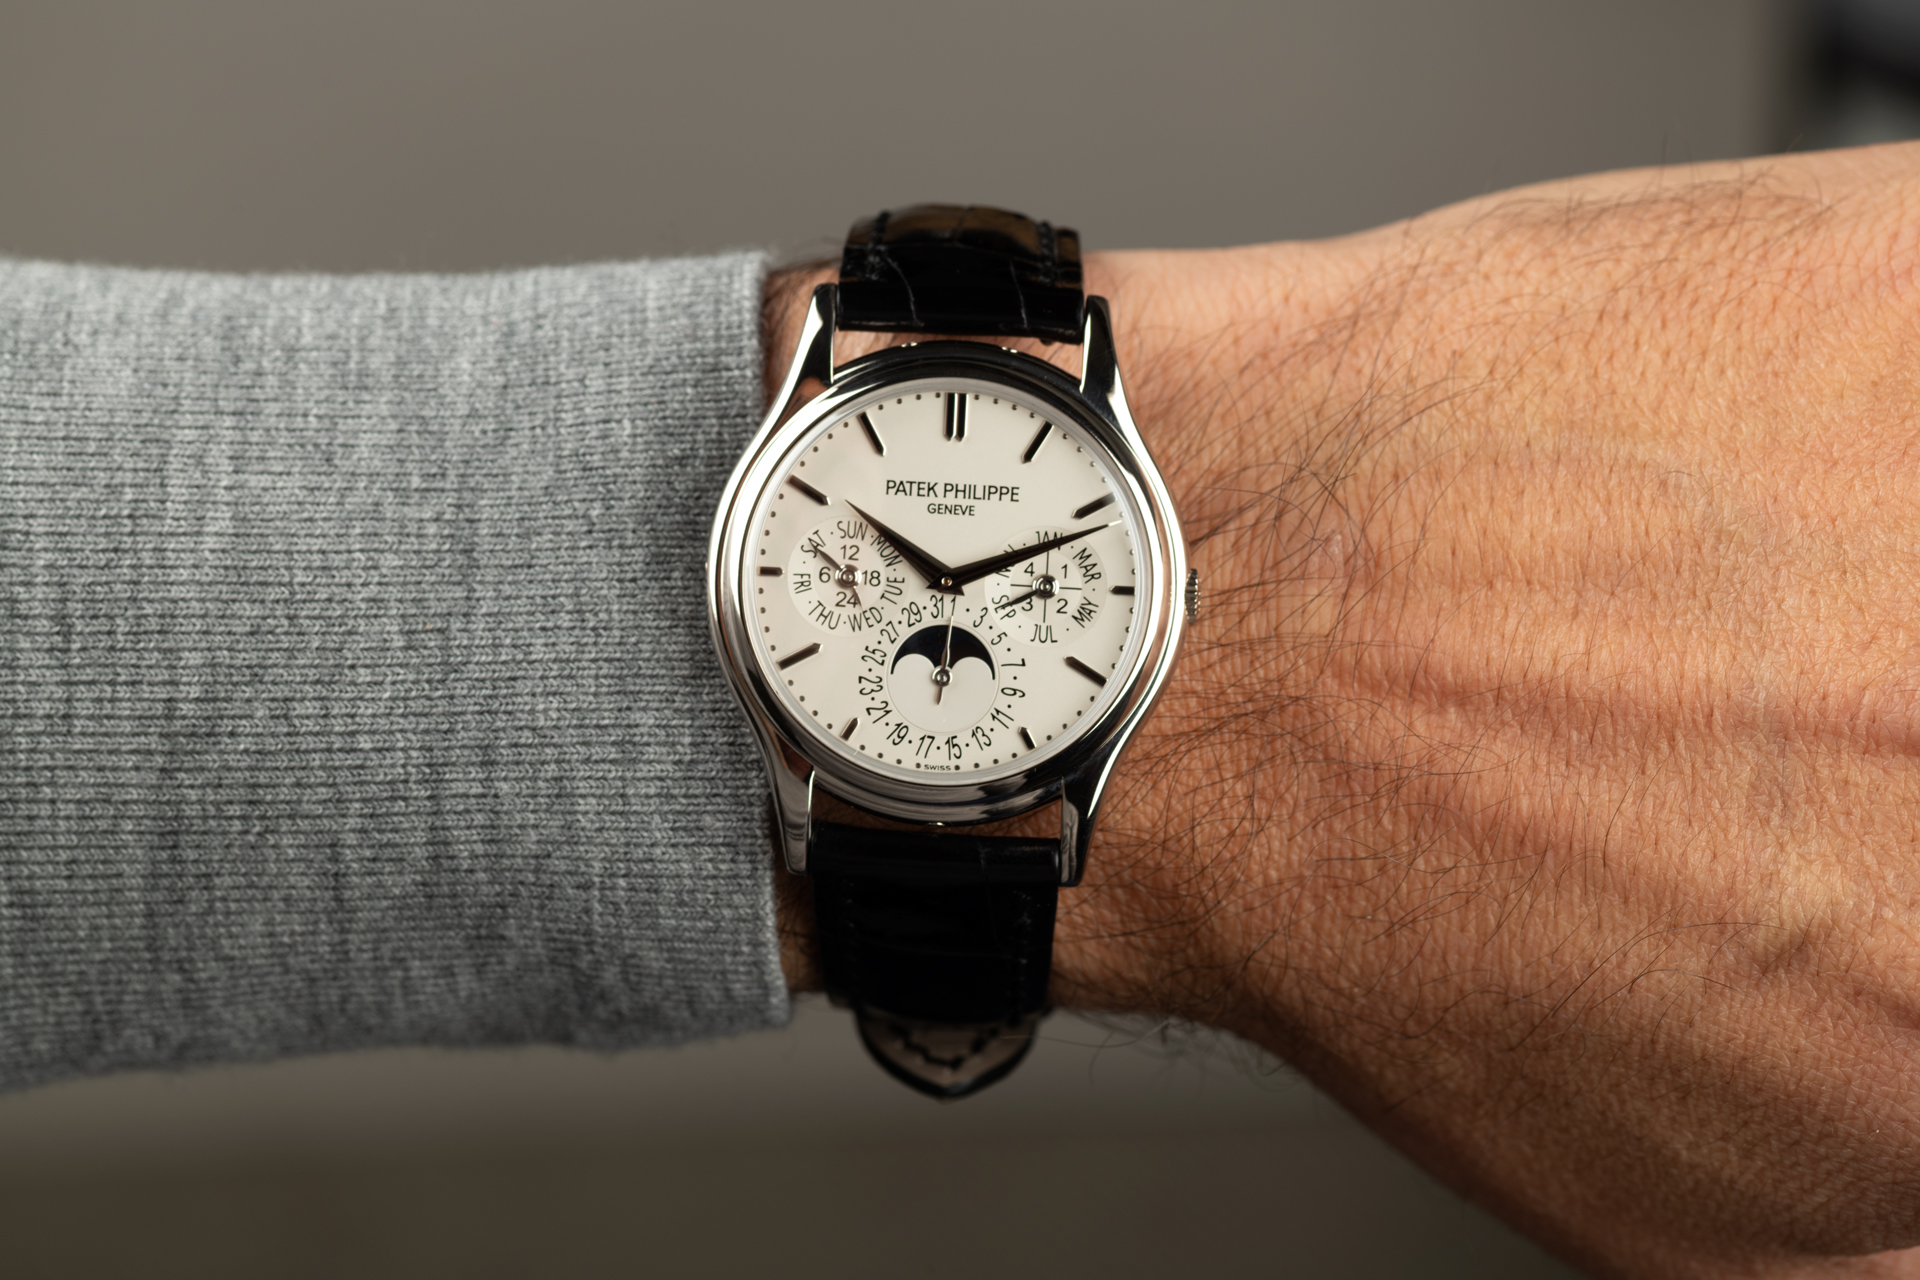 Patek Philippe Perpetual Calendar Watches